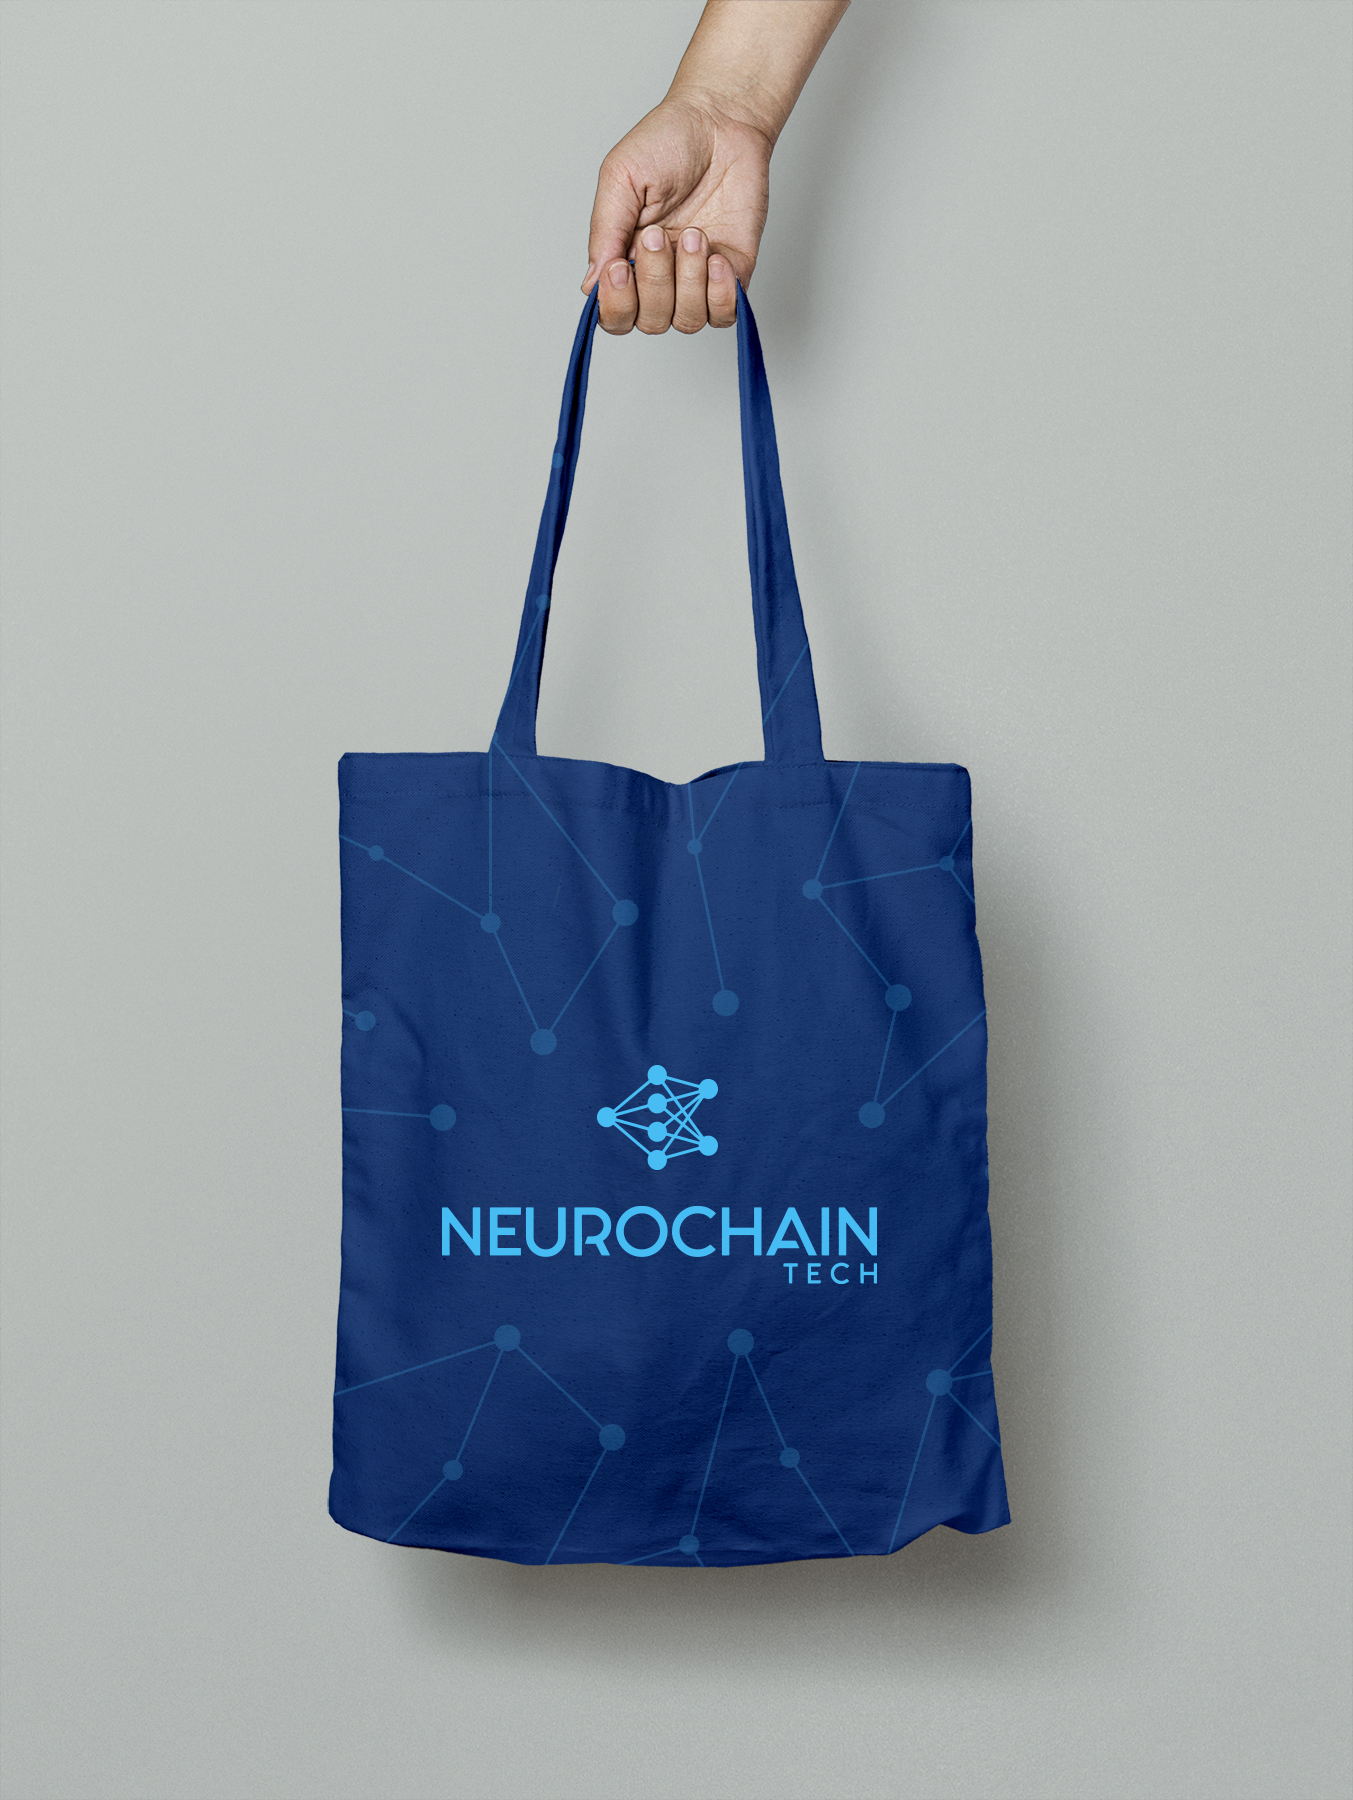 NeuroChain ecobag design